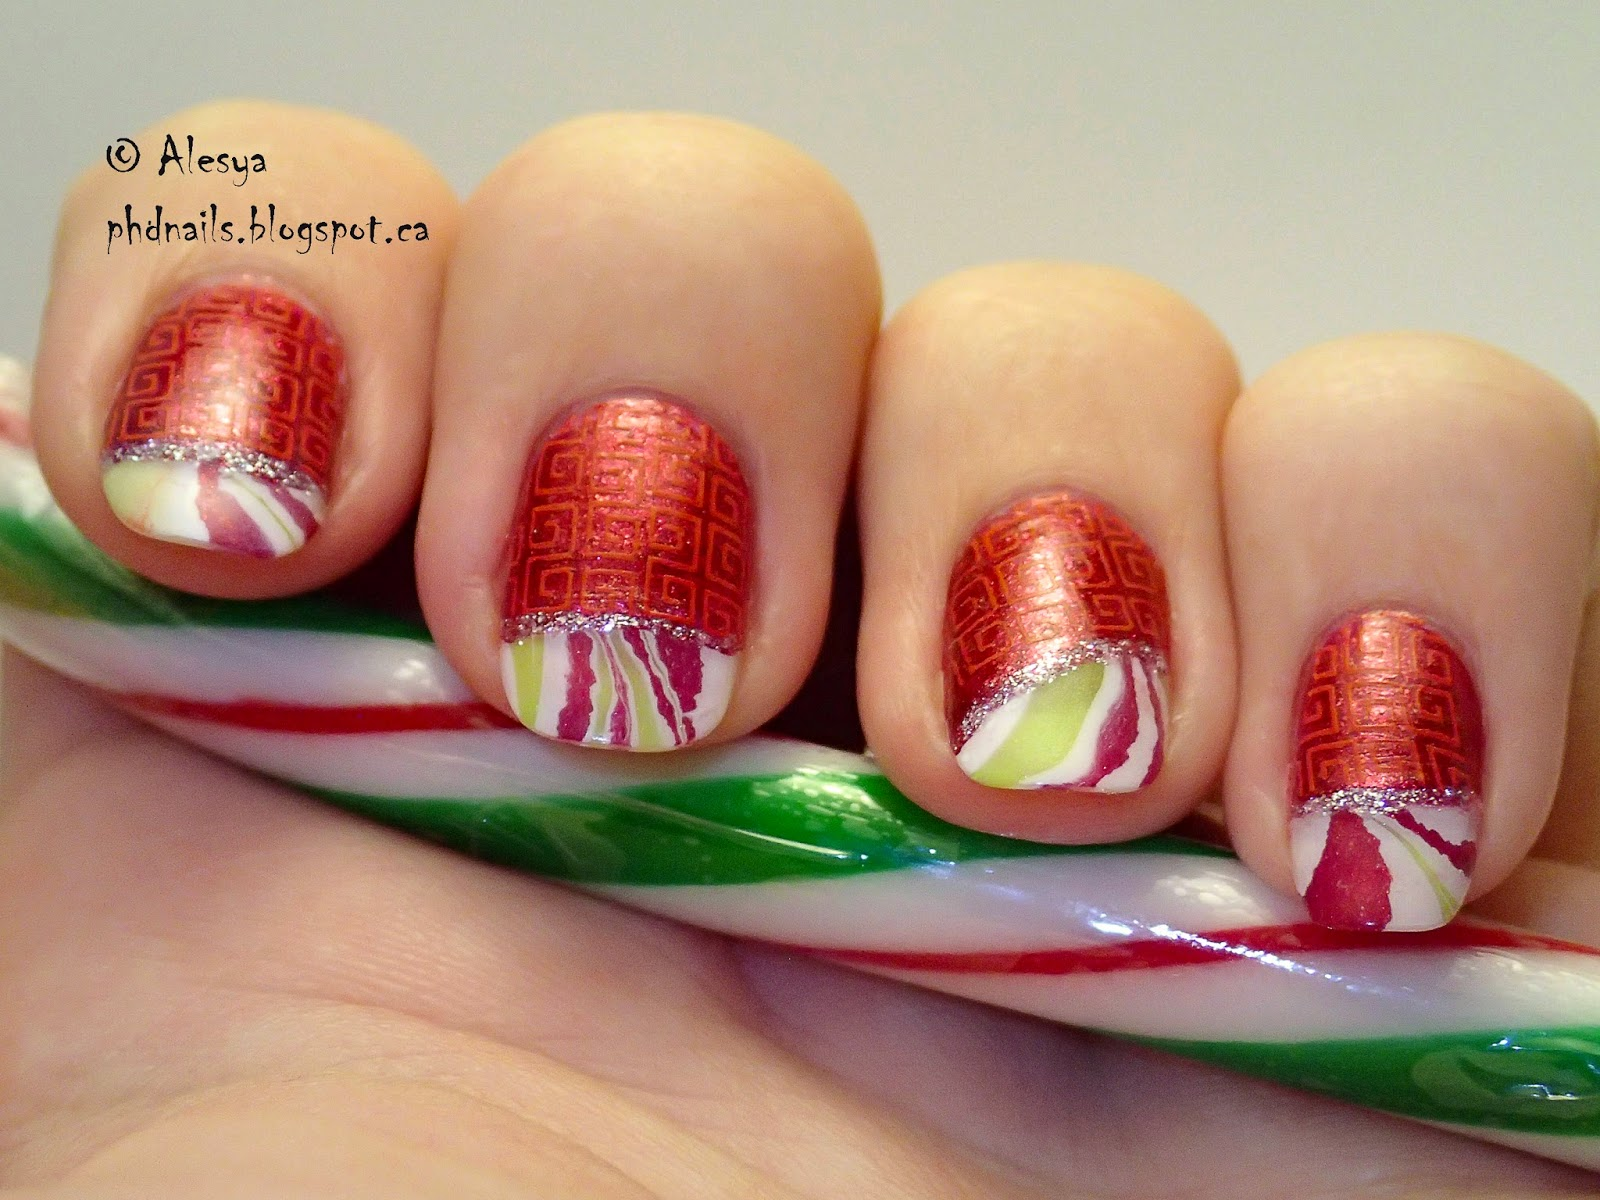 phd nails  winter nail art challenge  christmas candies